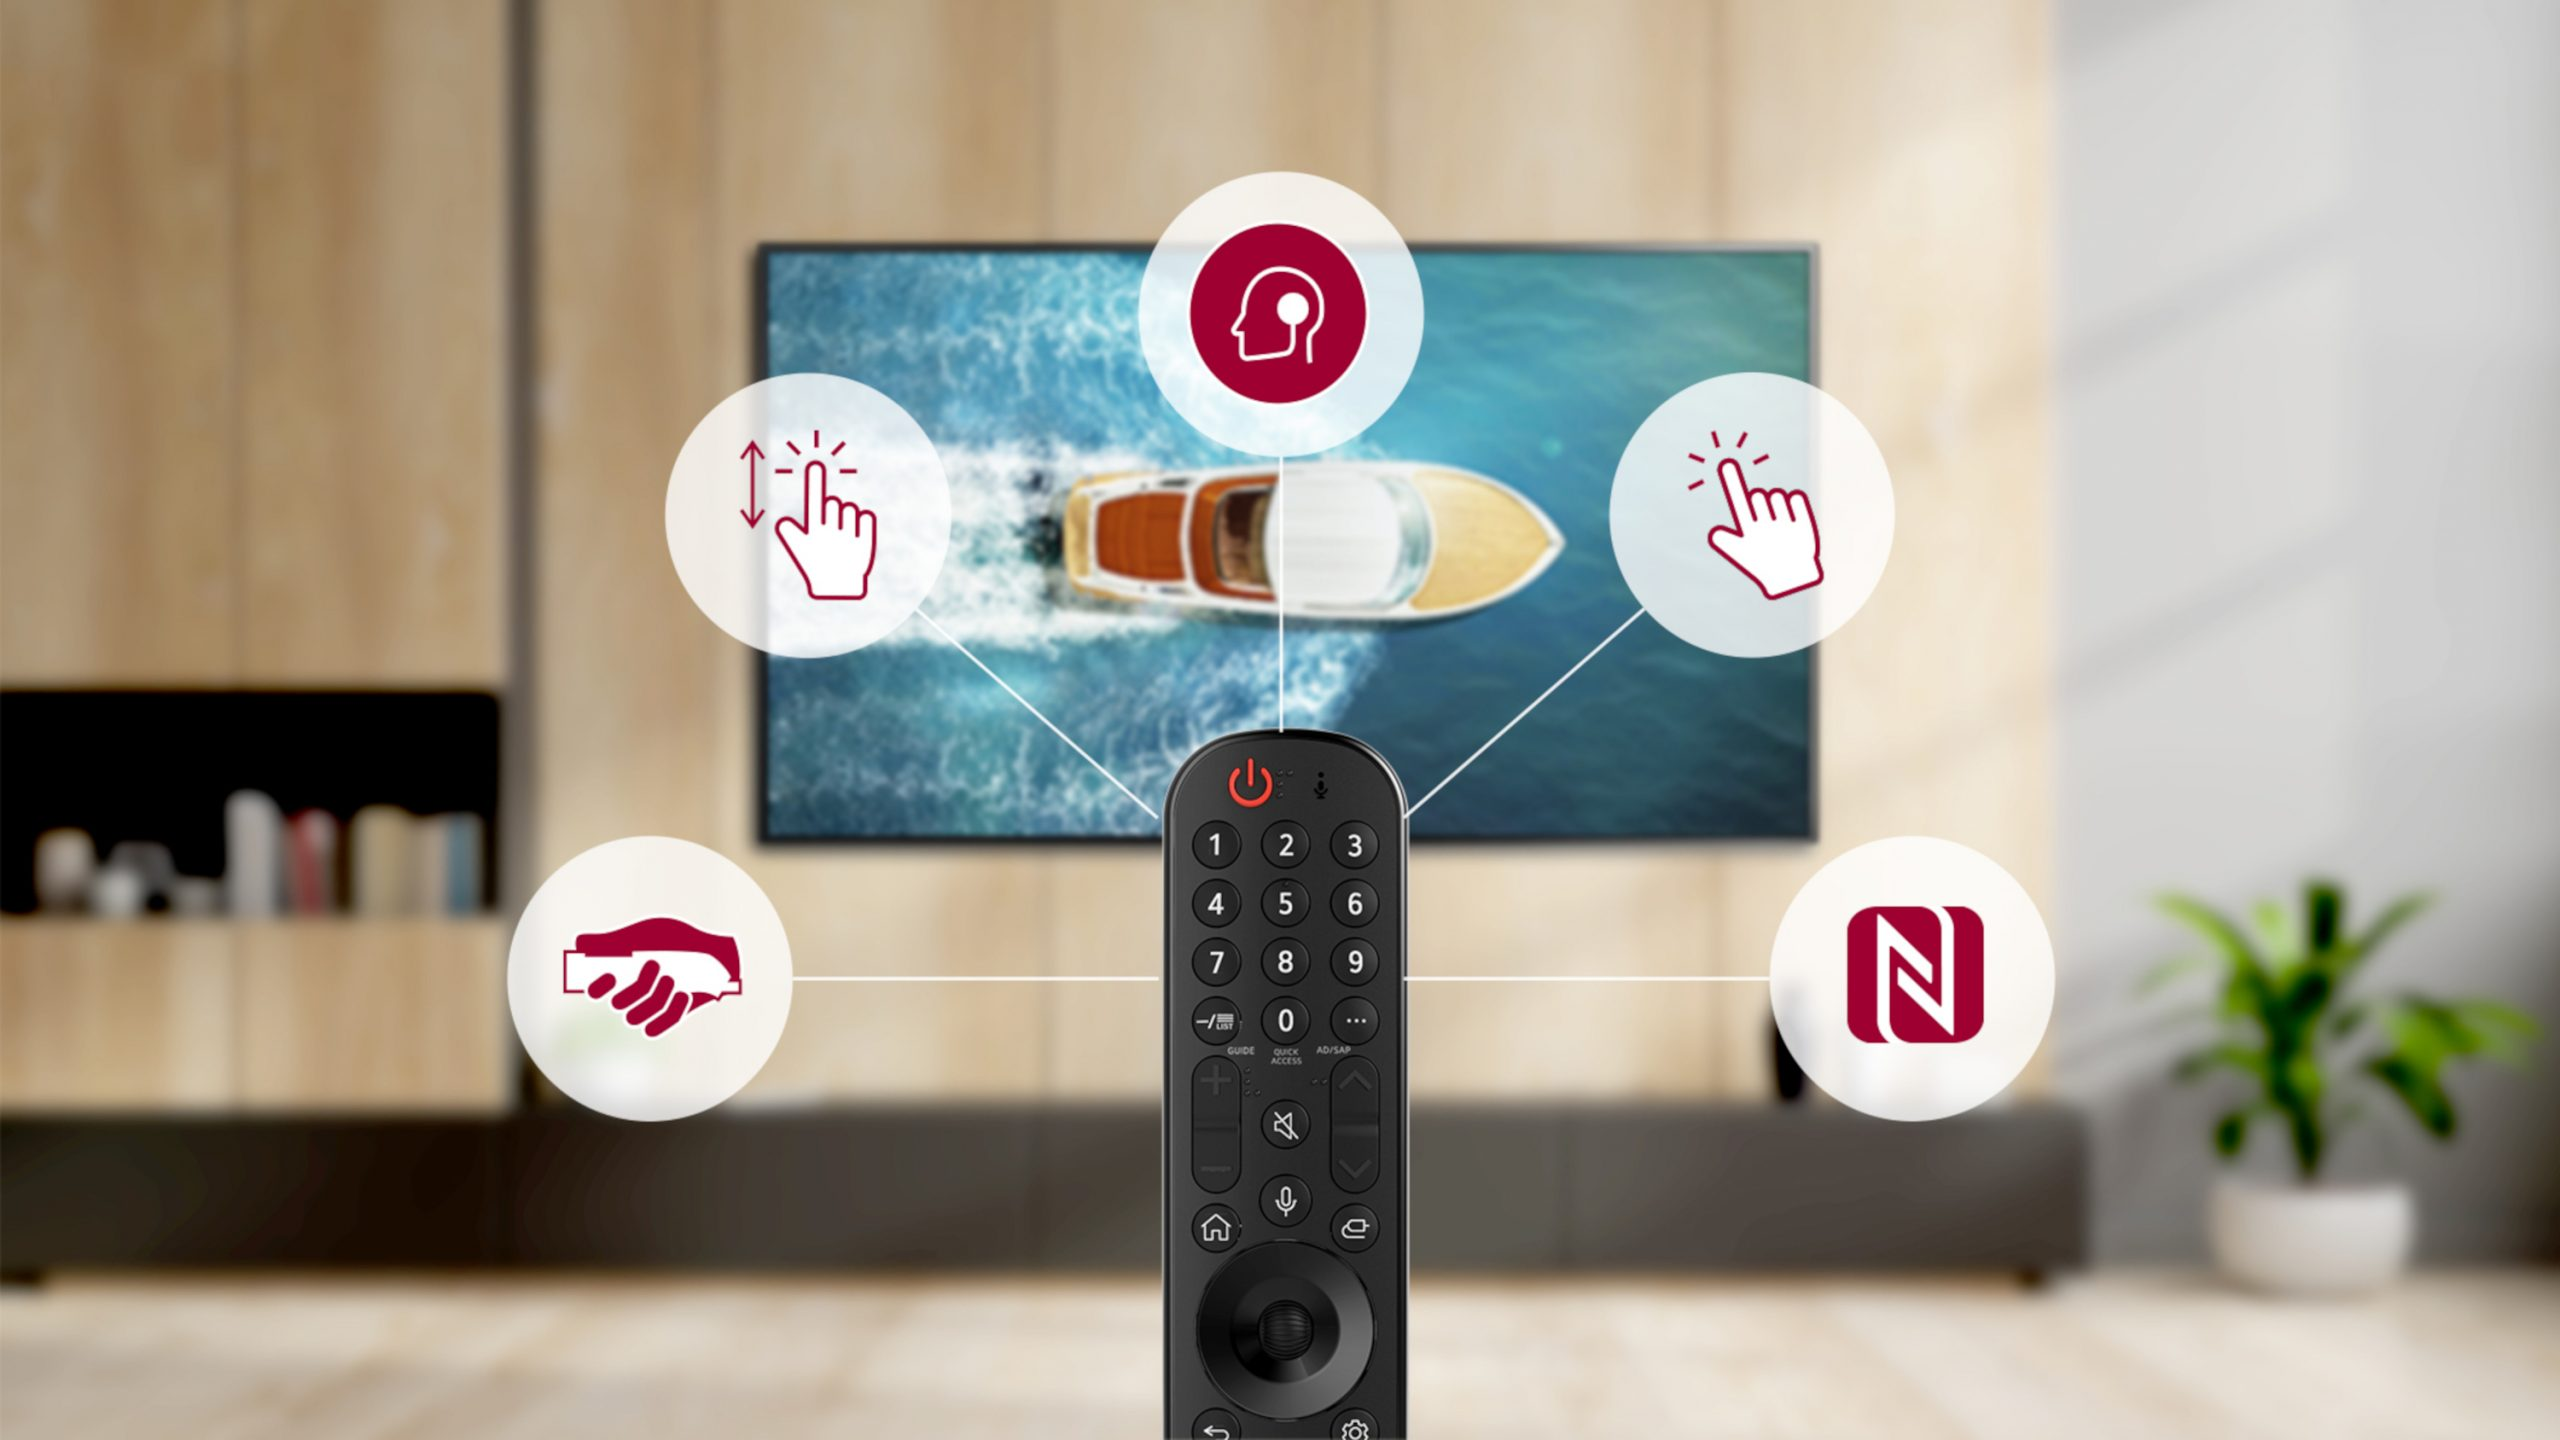 LG's webOS 6.0 new Home Screen, Magic Remote, and functionality for 2021 OLED TV